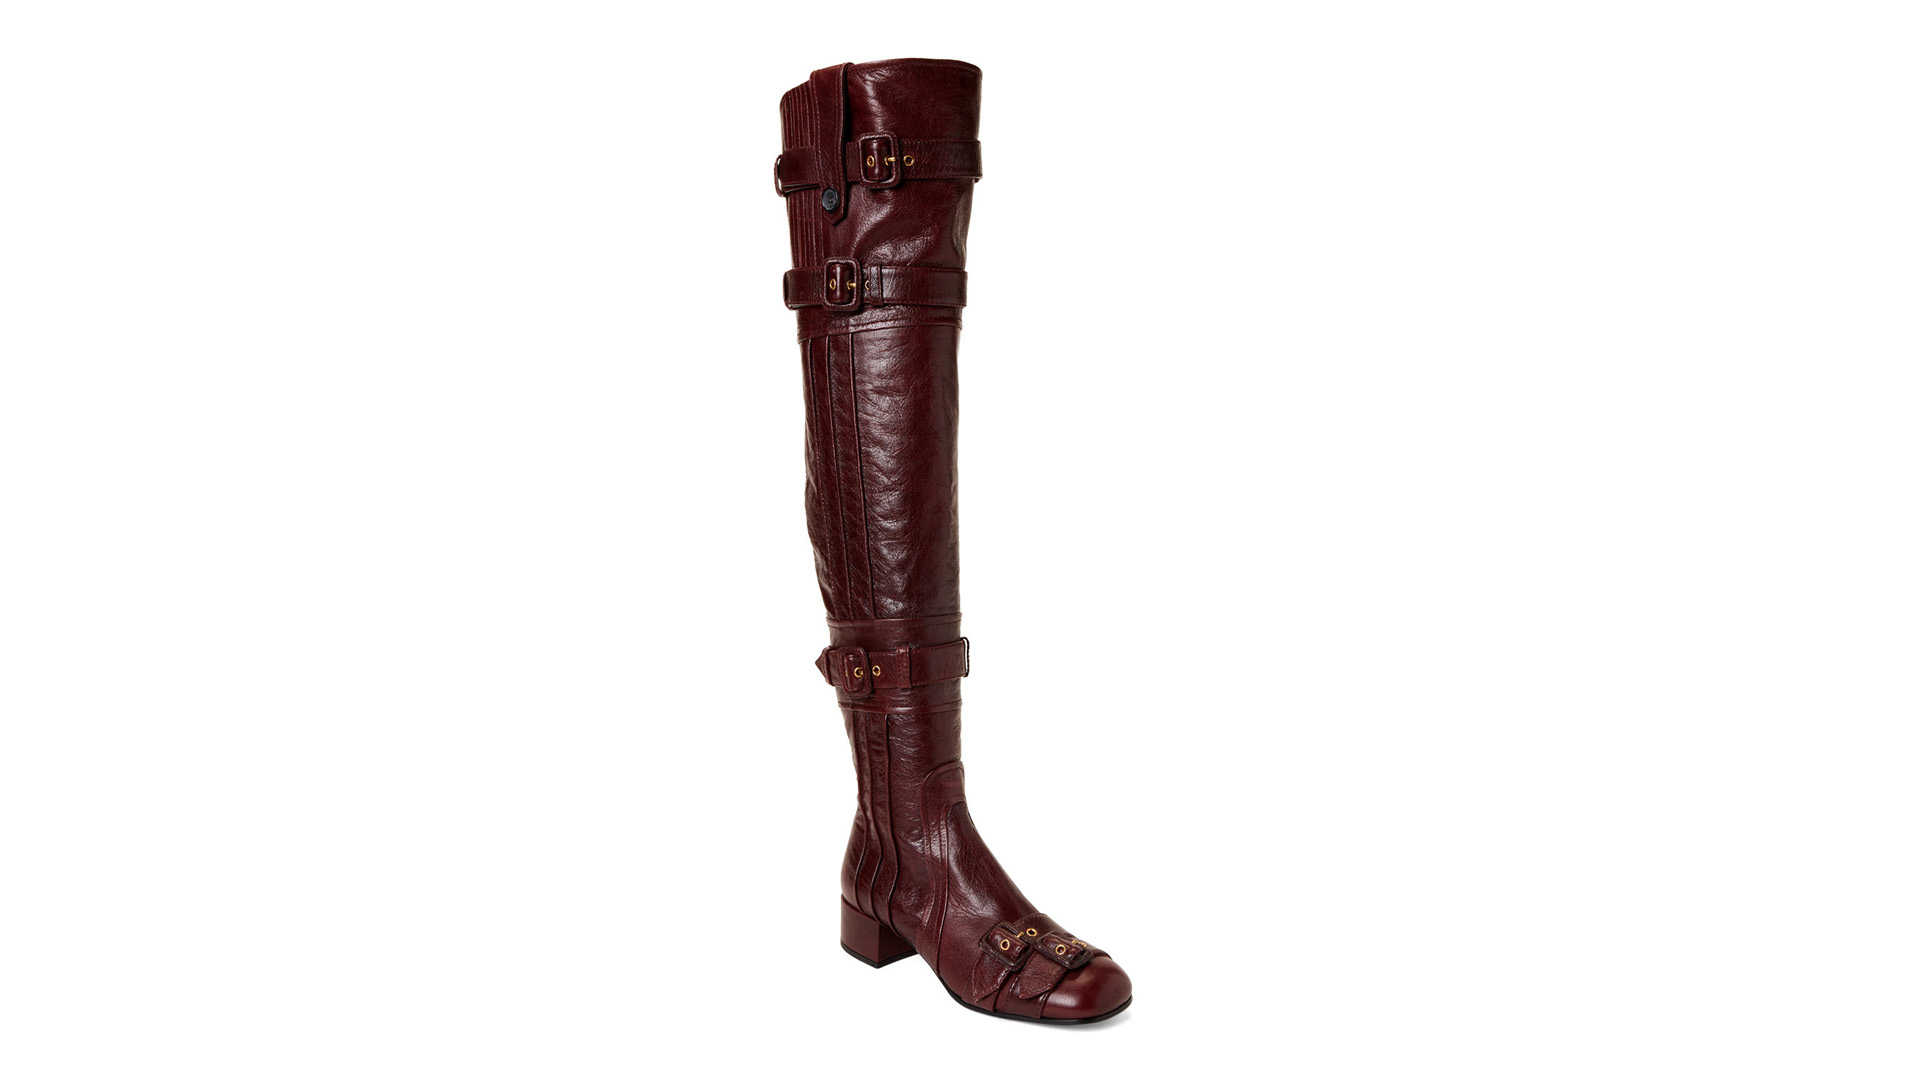 Prada Designer Shoes Burgundy Buckle Accent Leather Over The Knee Boots Over 50% OFF